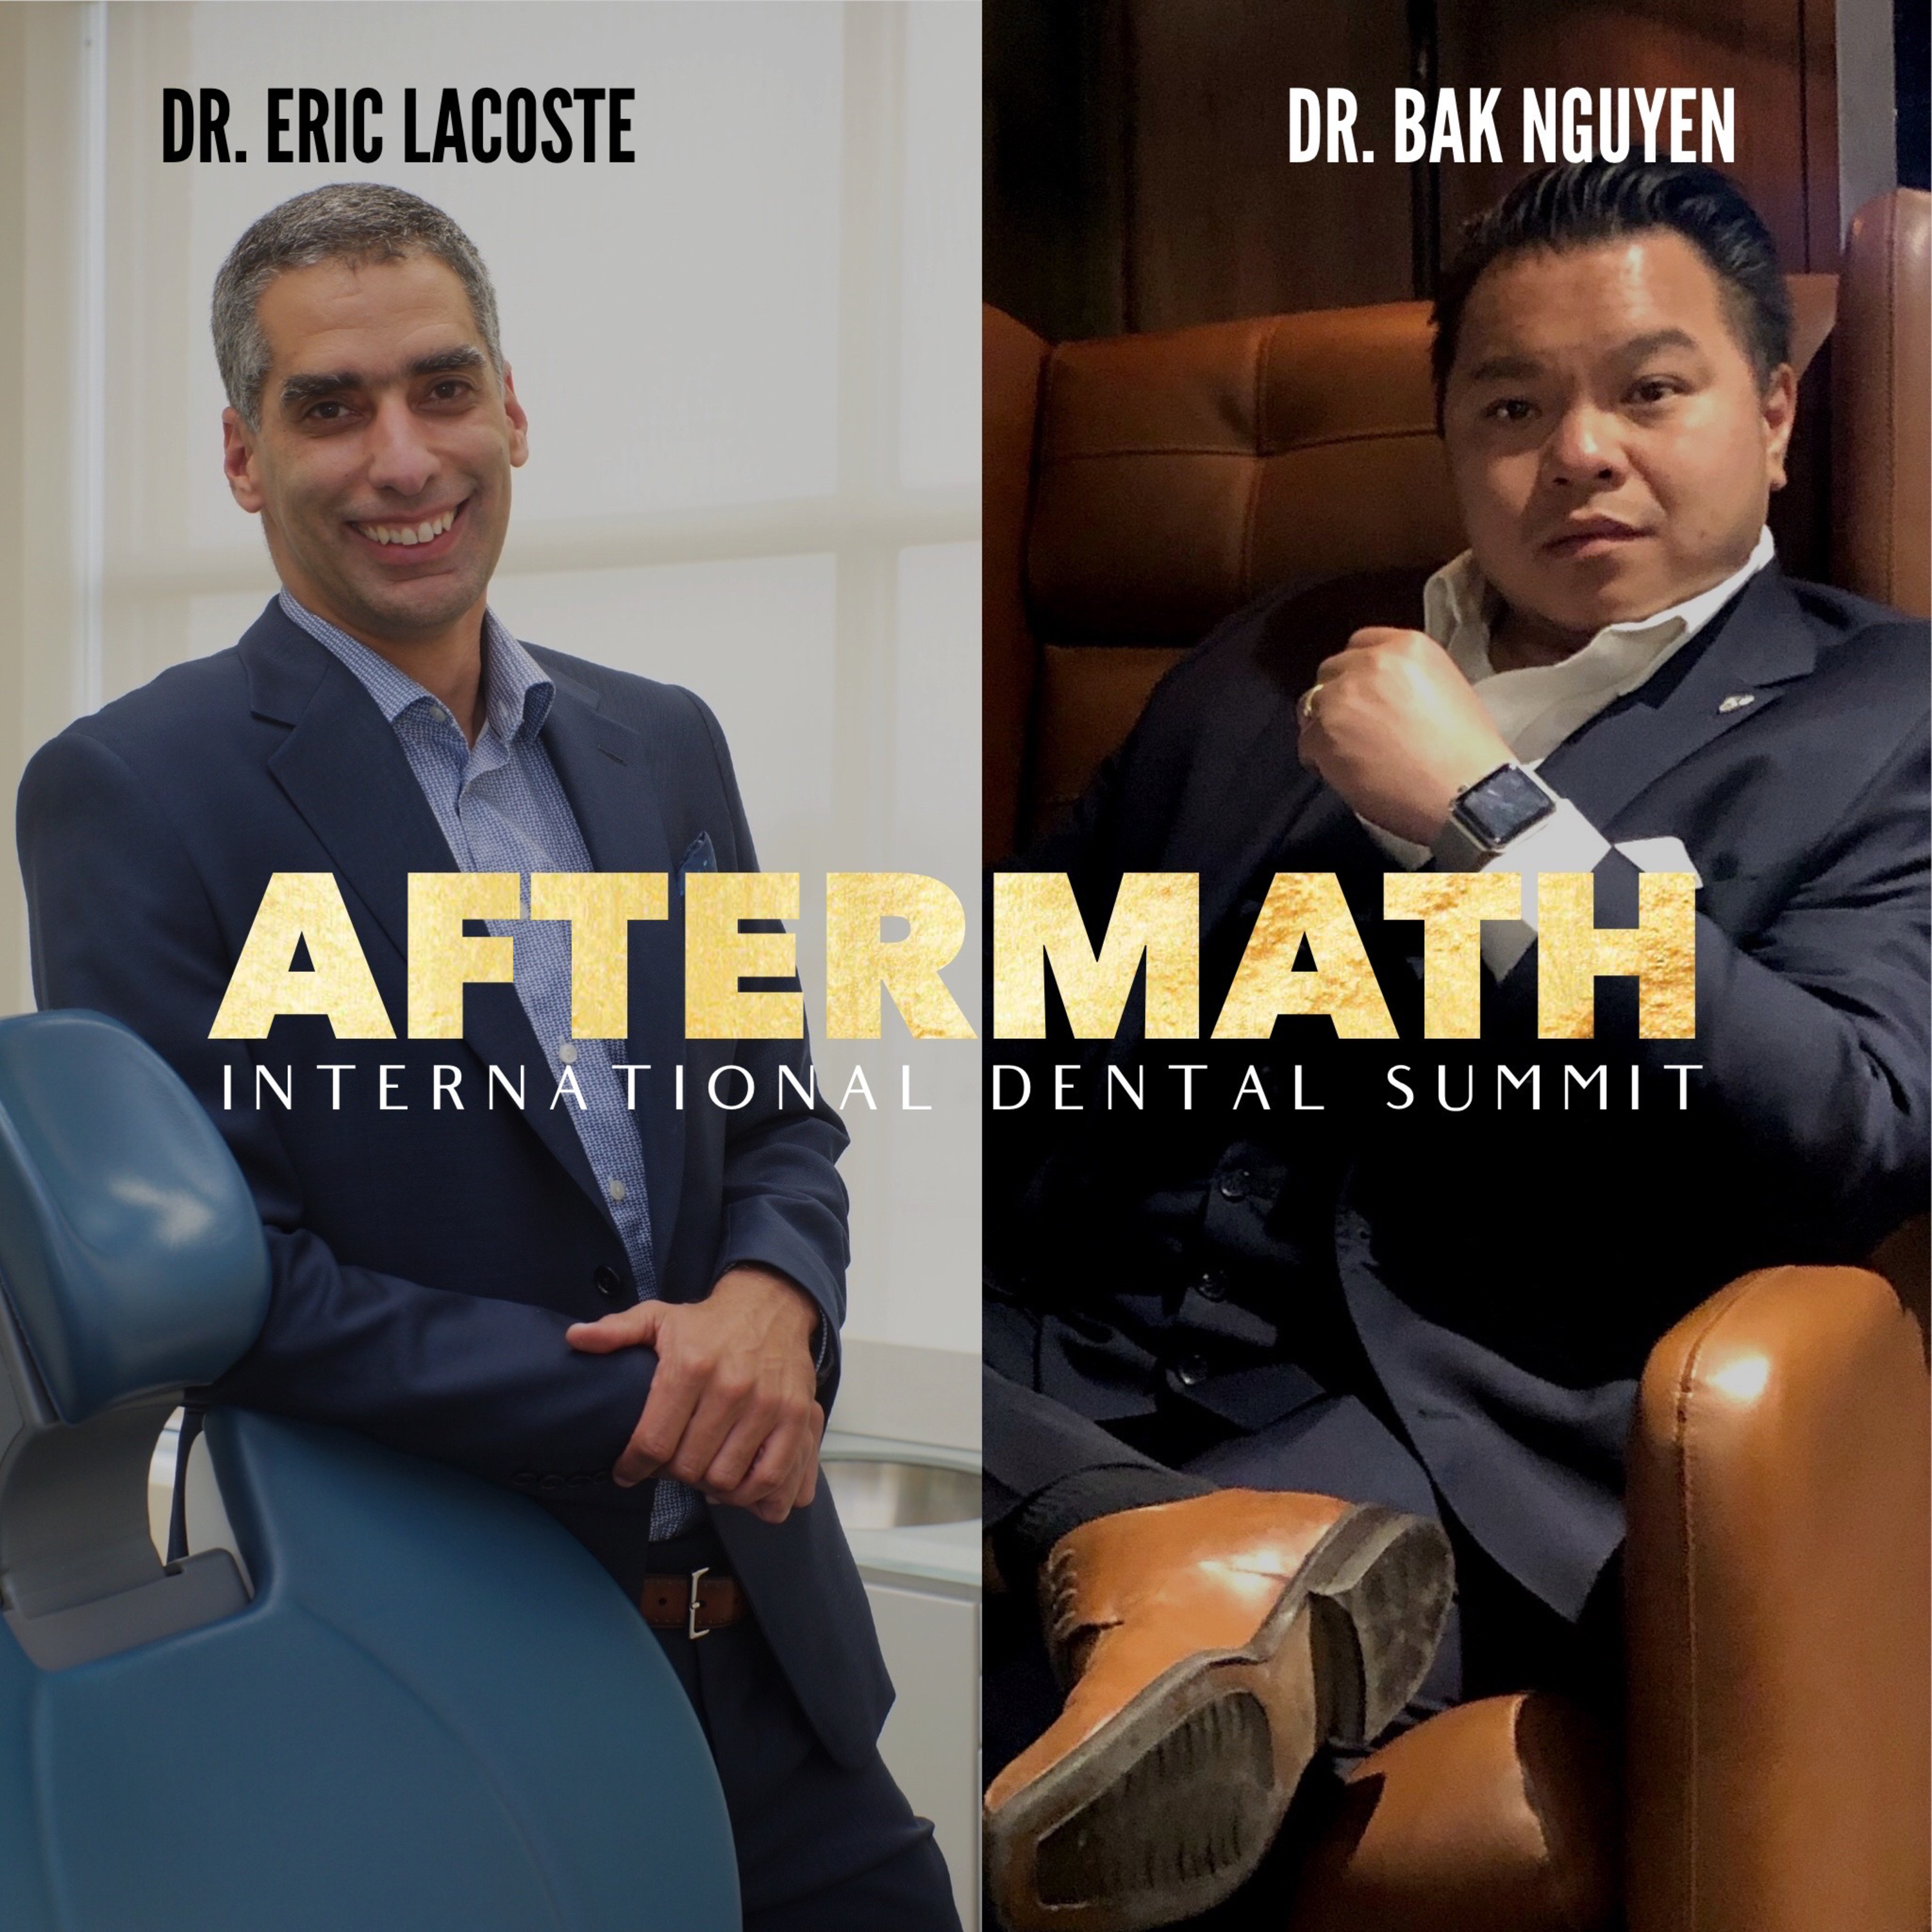 AFTERMATH, Business after COVID-19 with Dr. Eric Lacoste and Dr. Bak